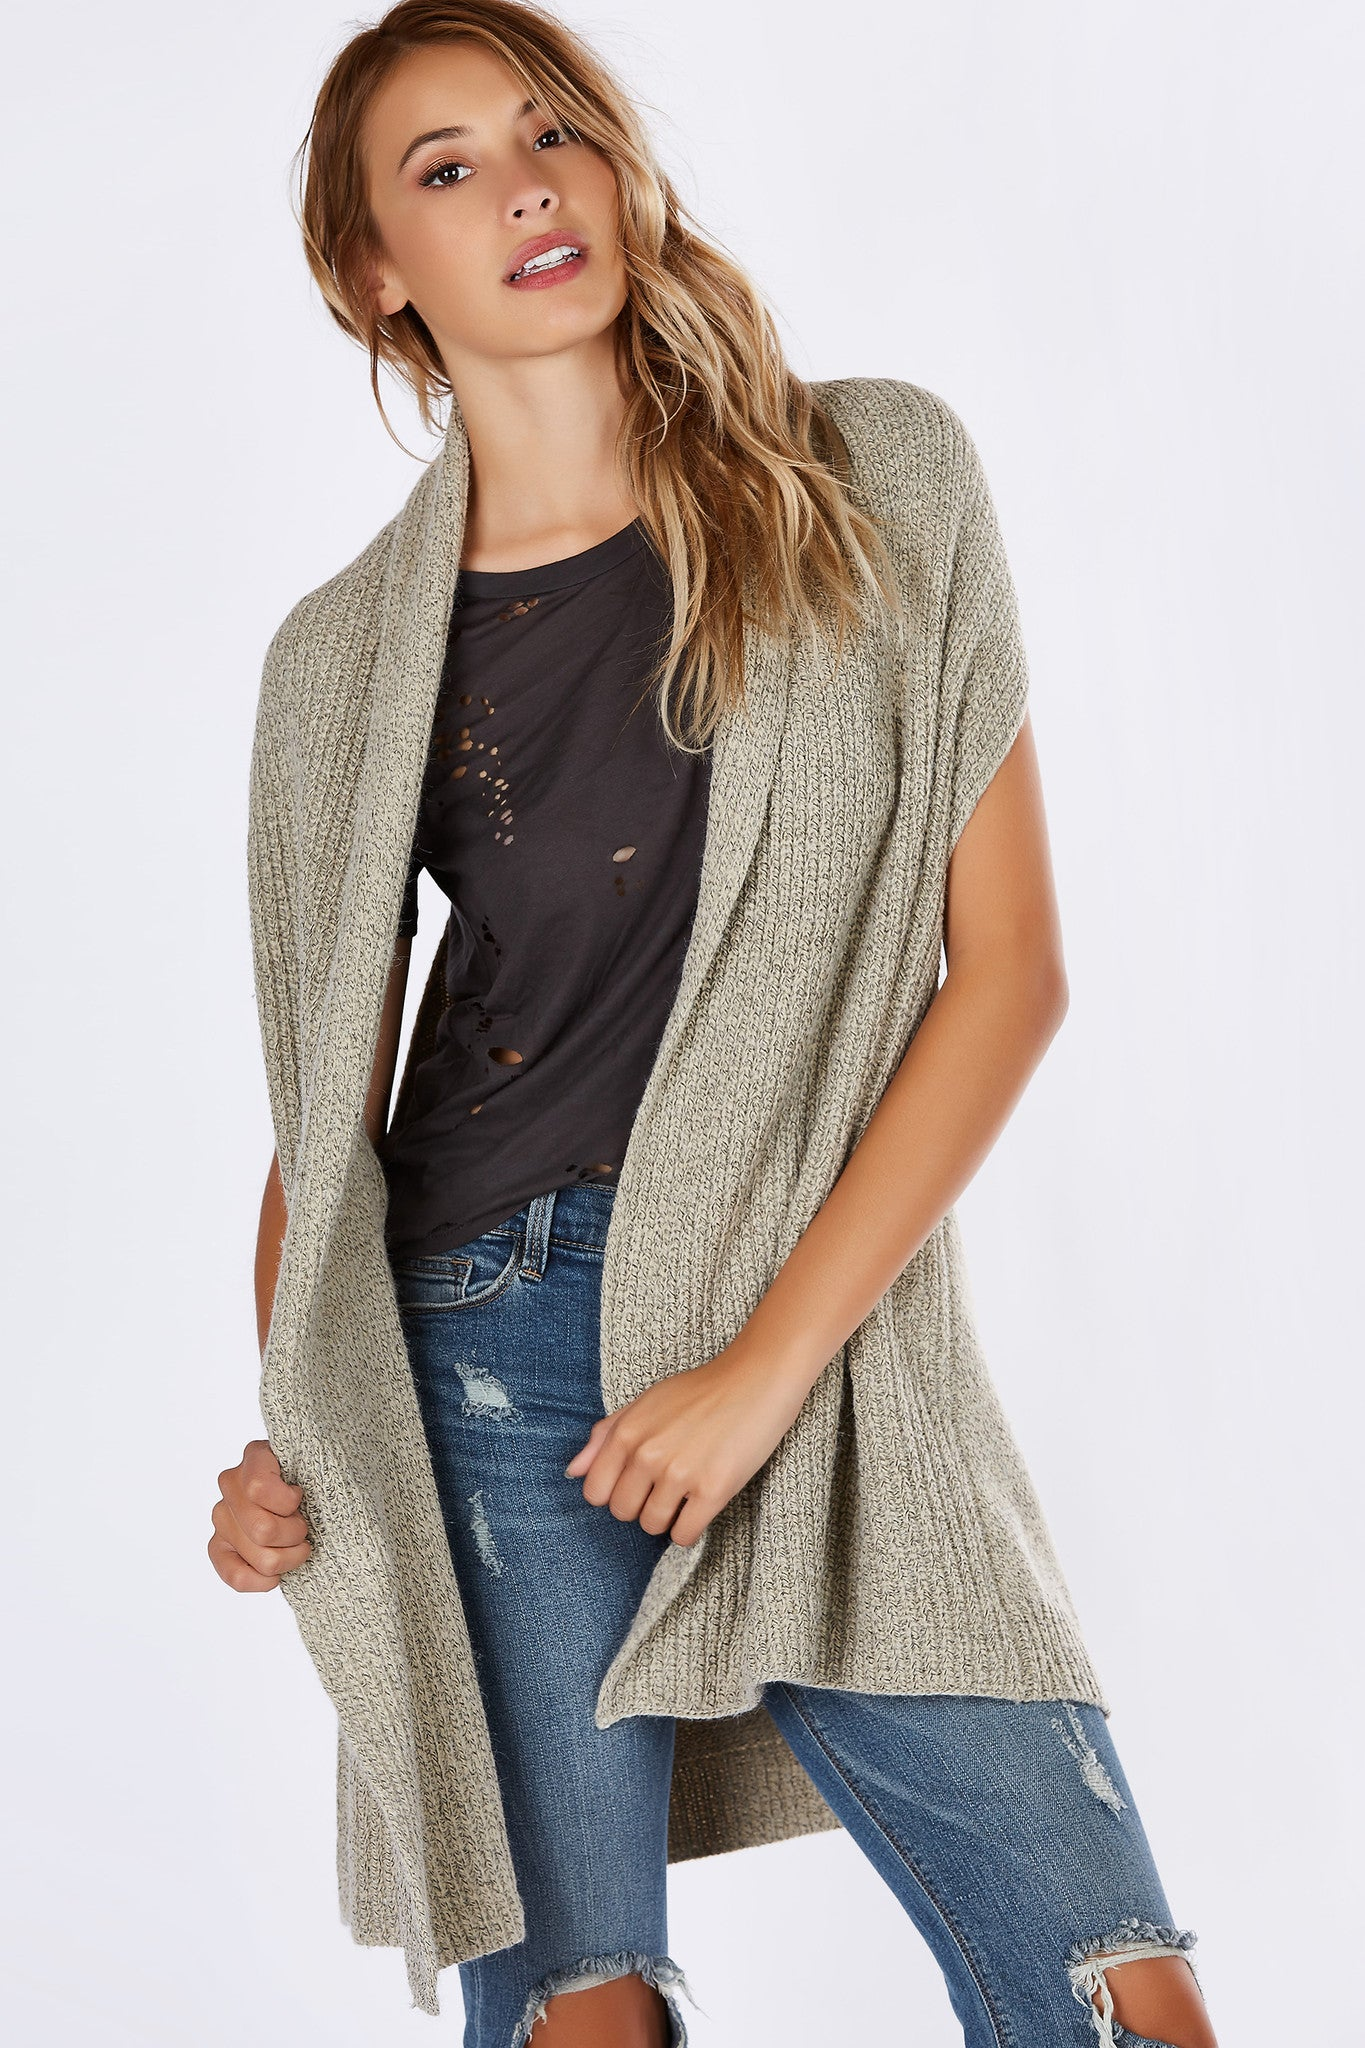 A casual-chic open vest with a smart put together vibe. Cozy knitted material perfect to throw on over a long sleeve top. Keep warm during the chiller nights by pairing with skinny jeans and booties!